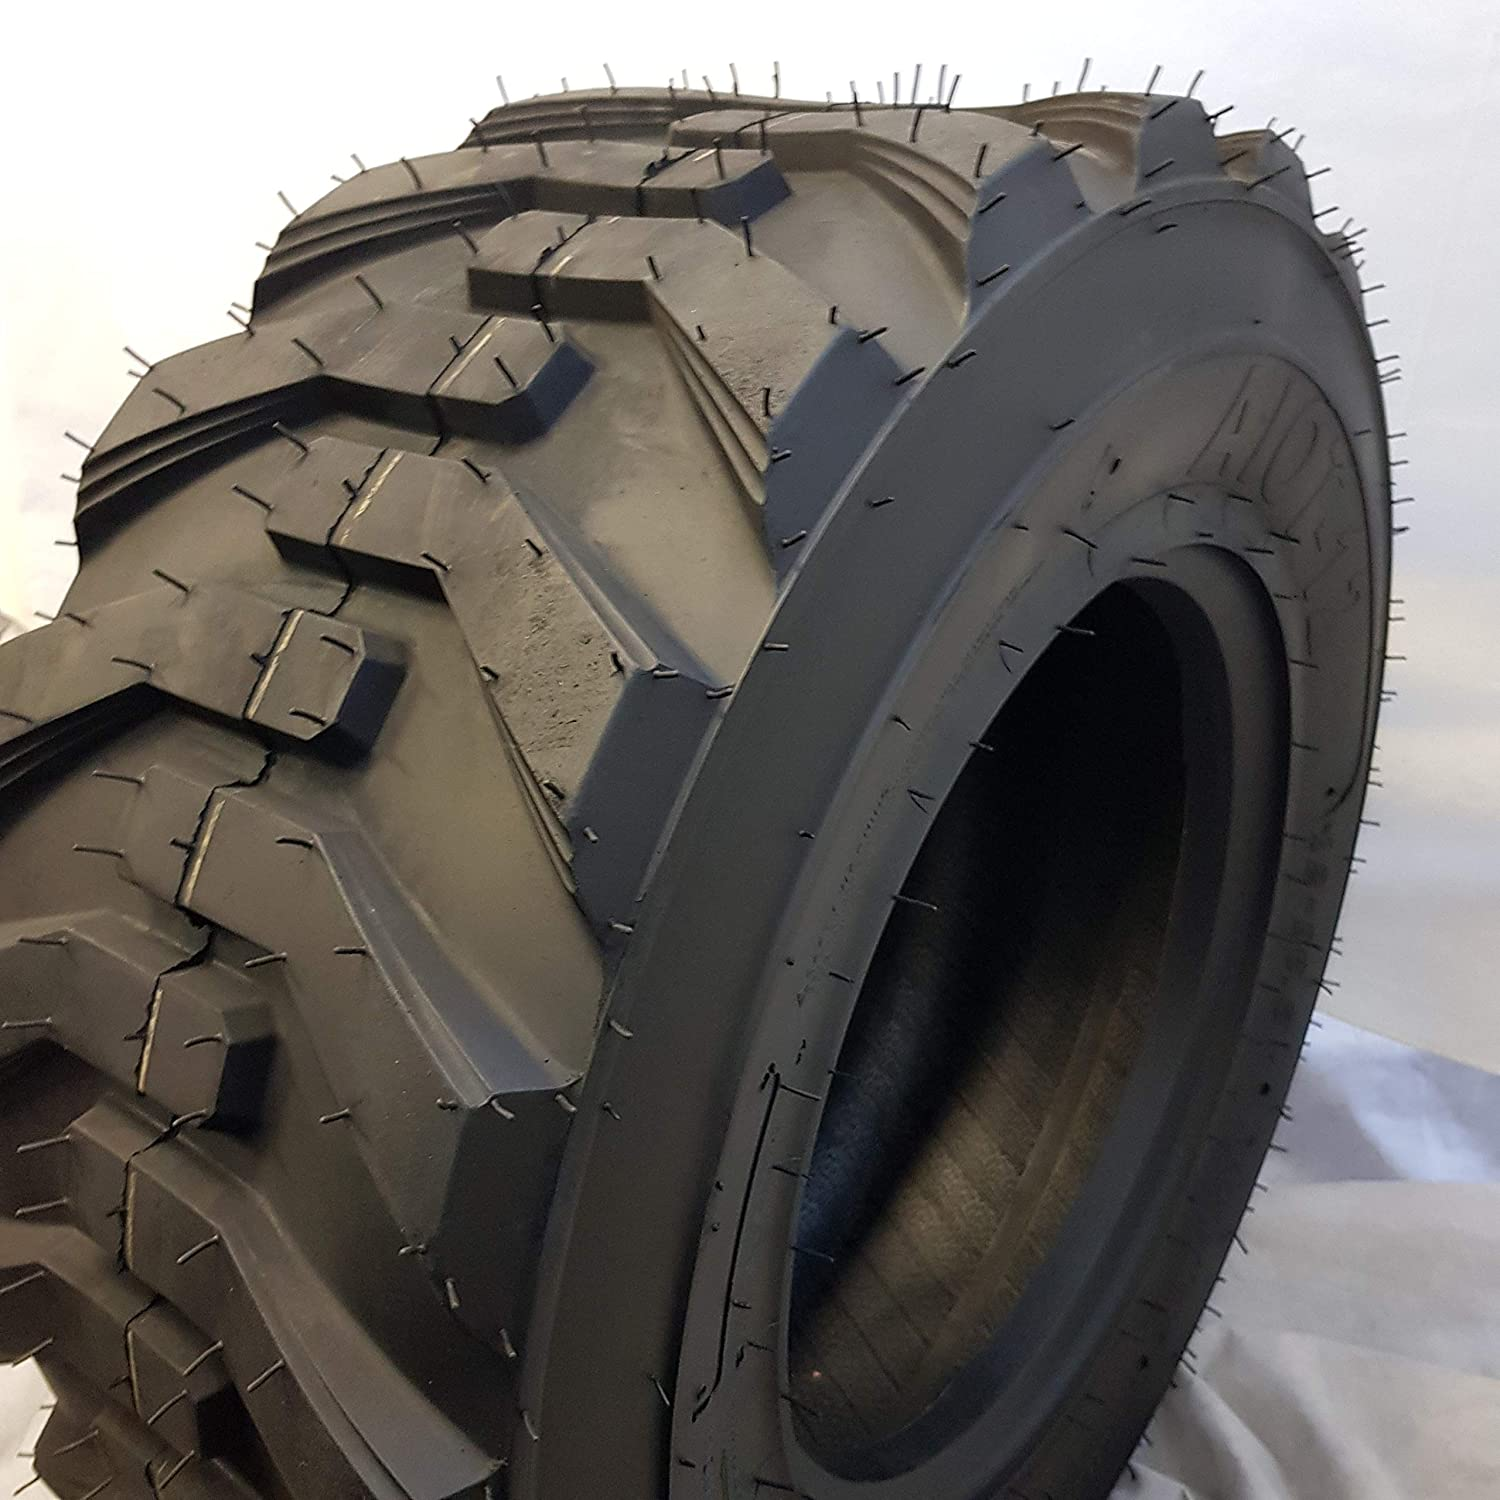 Amazon Com 1 Tire 12 16 5 Road Crew Aiot 12 Skid Steer Tire 12 Ply Nhs Heavy Duty Weigh 65 Lbs Automotive